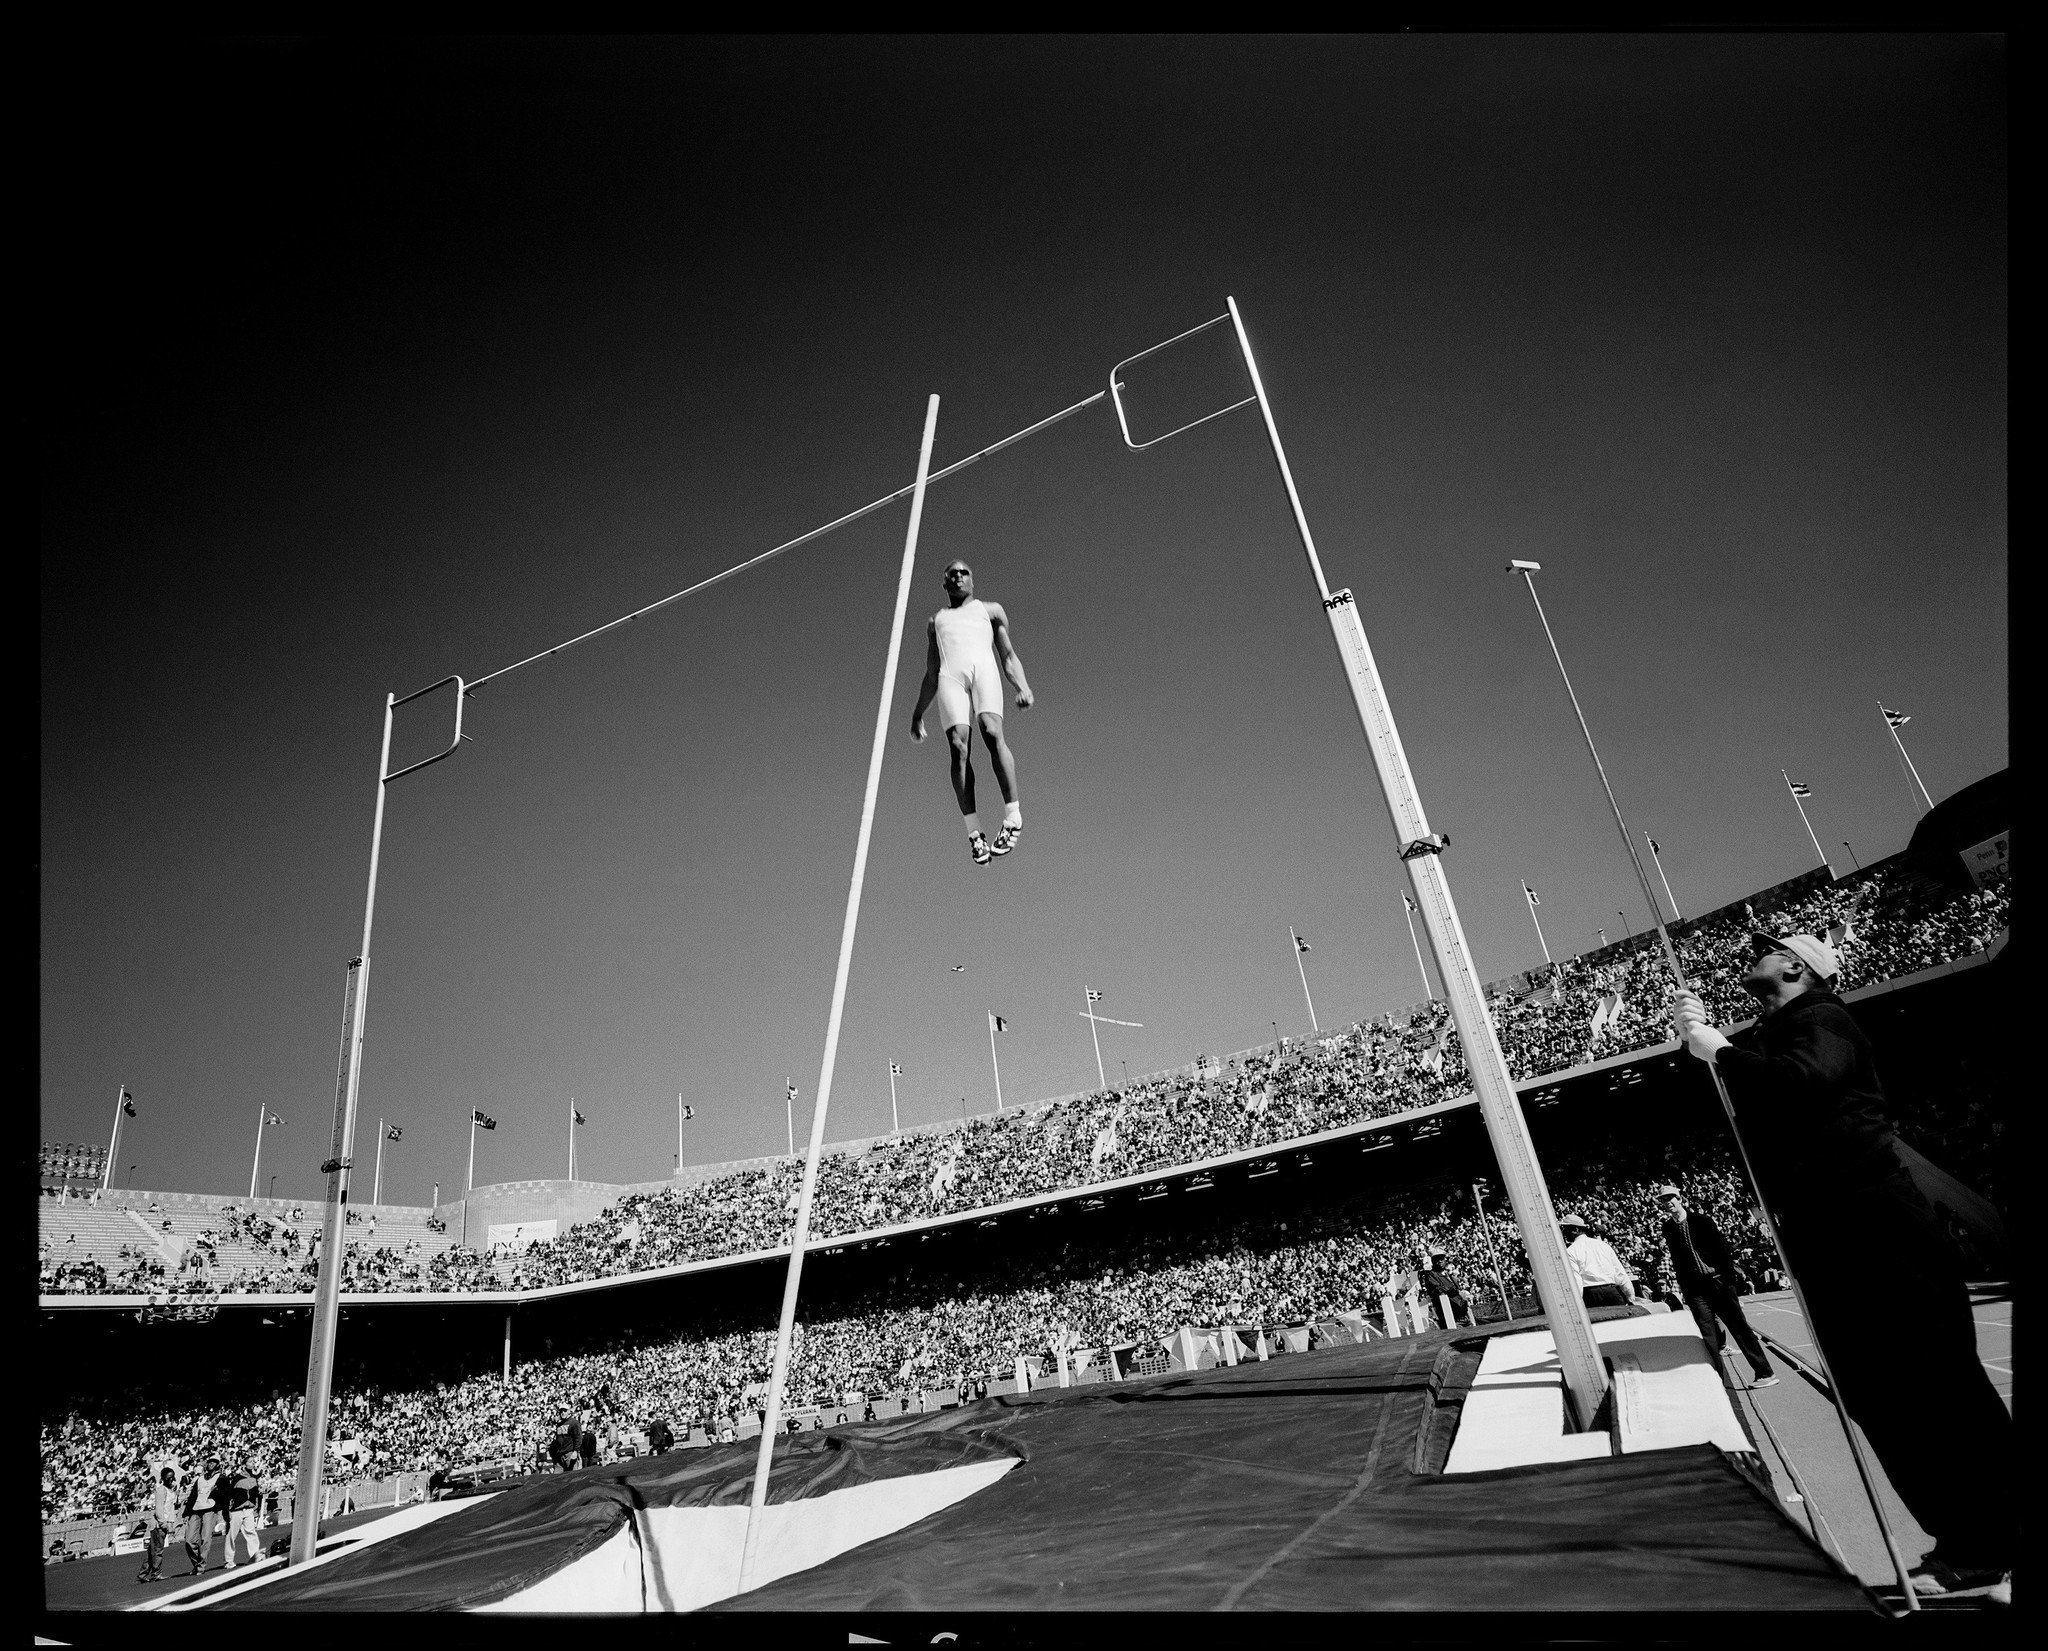 A pole vaulter at the U.S. Olympics trials in Philadelphia in 1996.